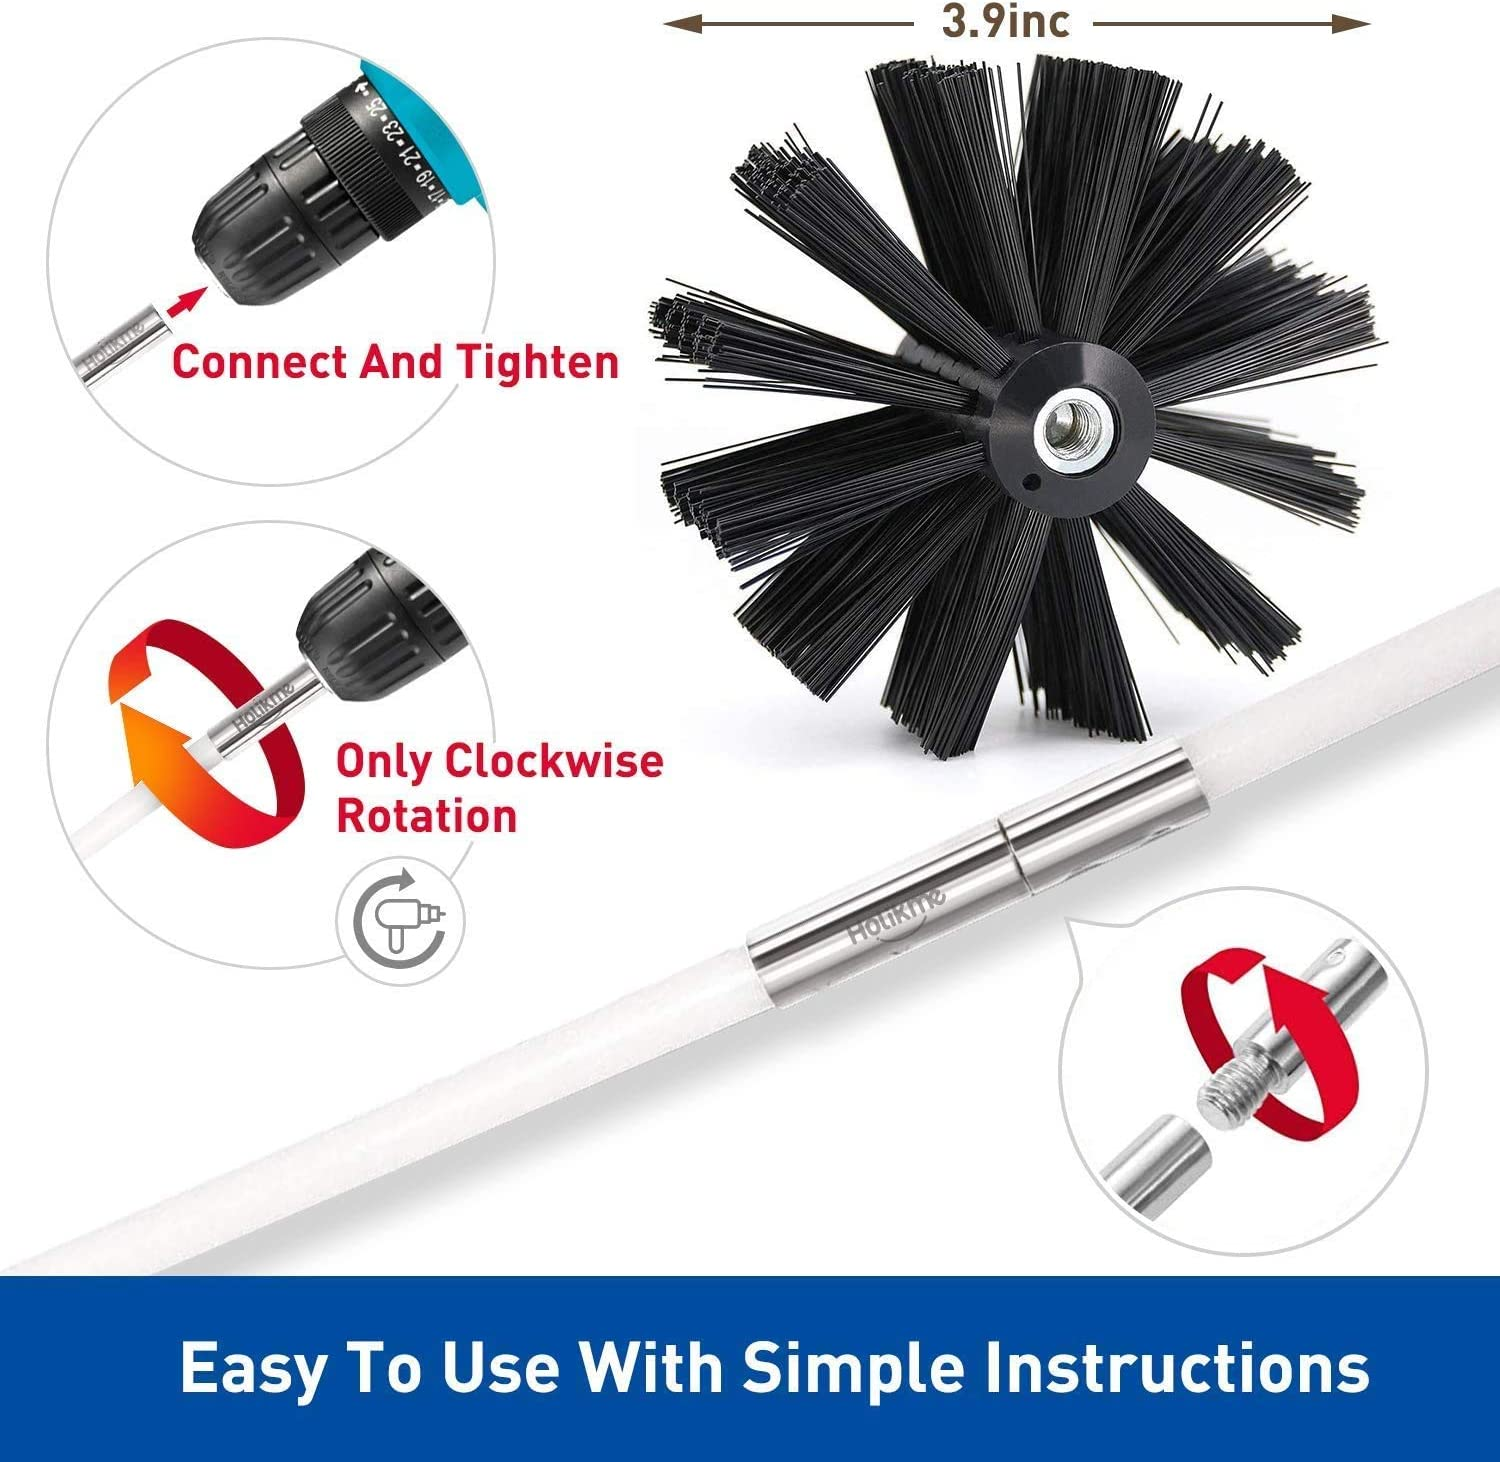 Use with or Without a Power Drill 25 Feet Dryer Vent Cleaning Brush Kit Profession Lint Remover Extends Up to 25 Feet Fireplace Chimney Brushes Synthetic Clean Brush Head